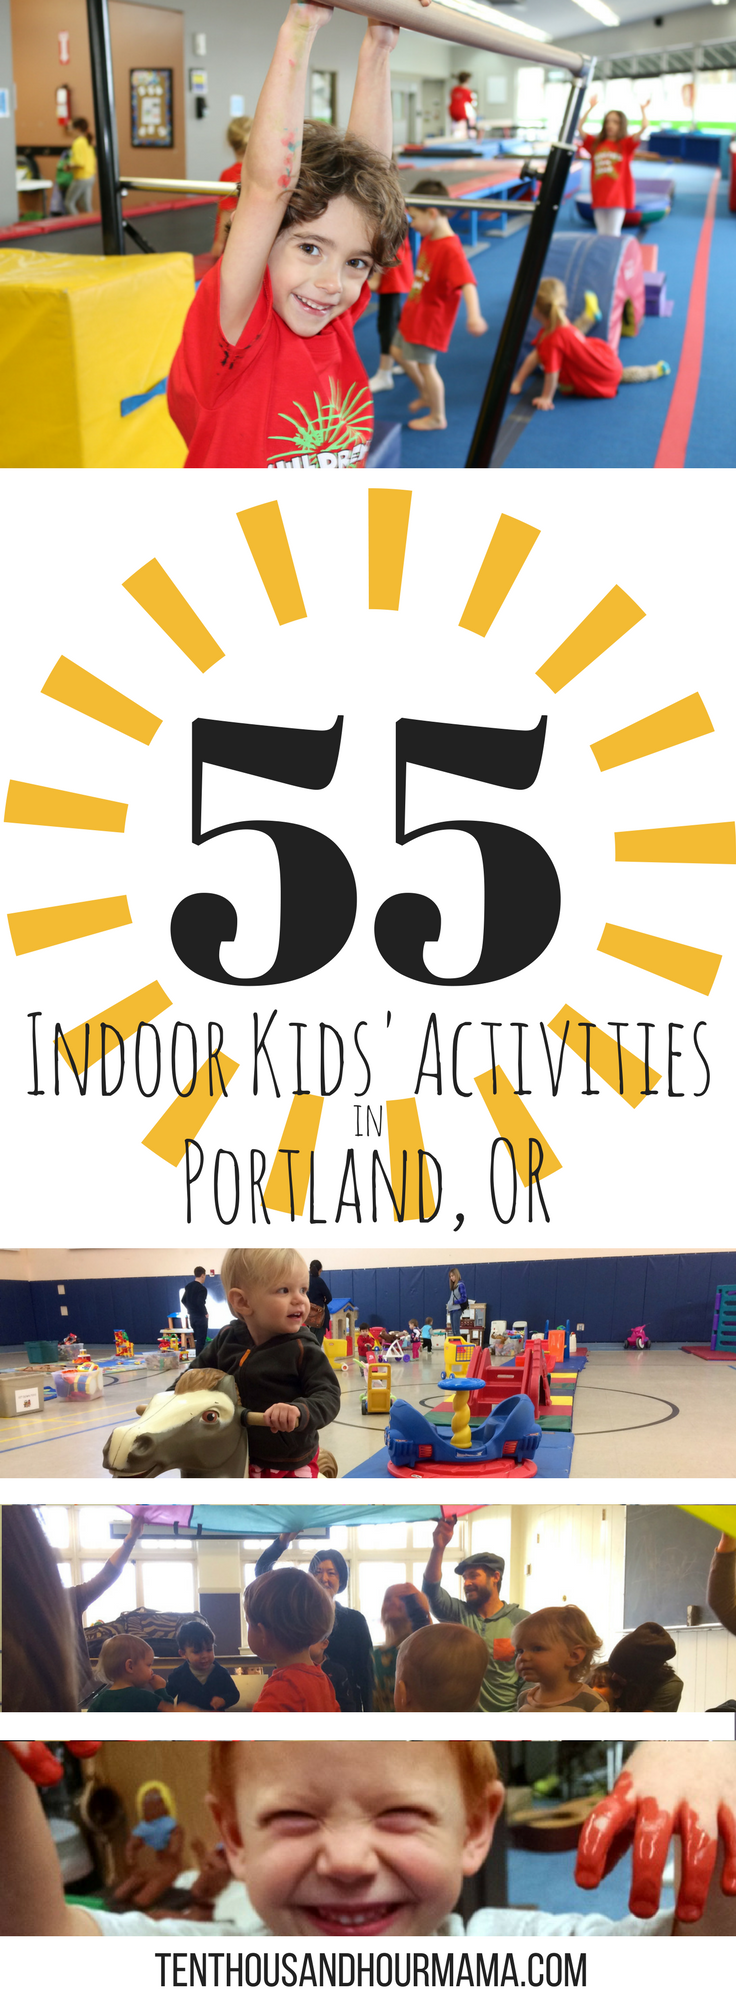 Indoor activities in Portland, Oregon for kids and families - tons of fun! Ten Thousand Hour Mama